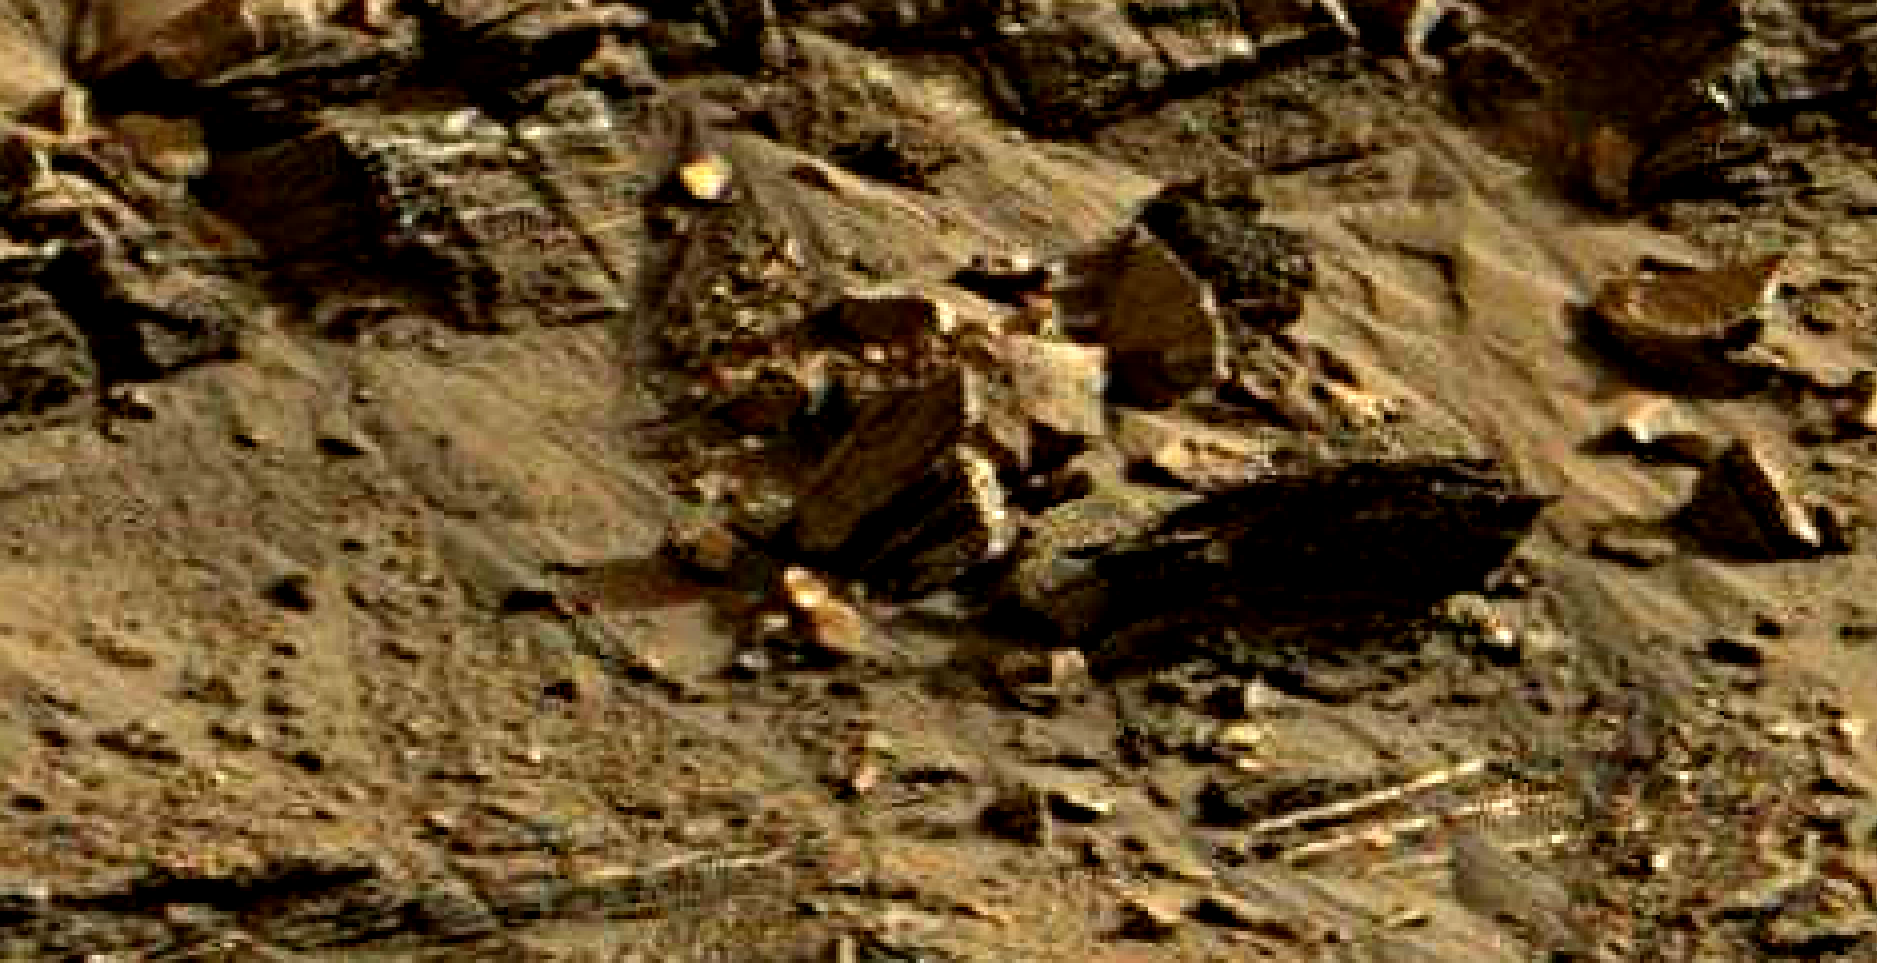 mars sol 1419 anomaly artifacts 15 was life on mars